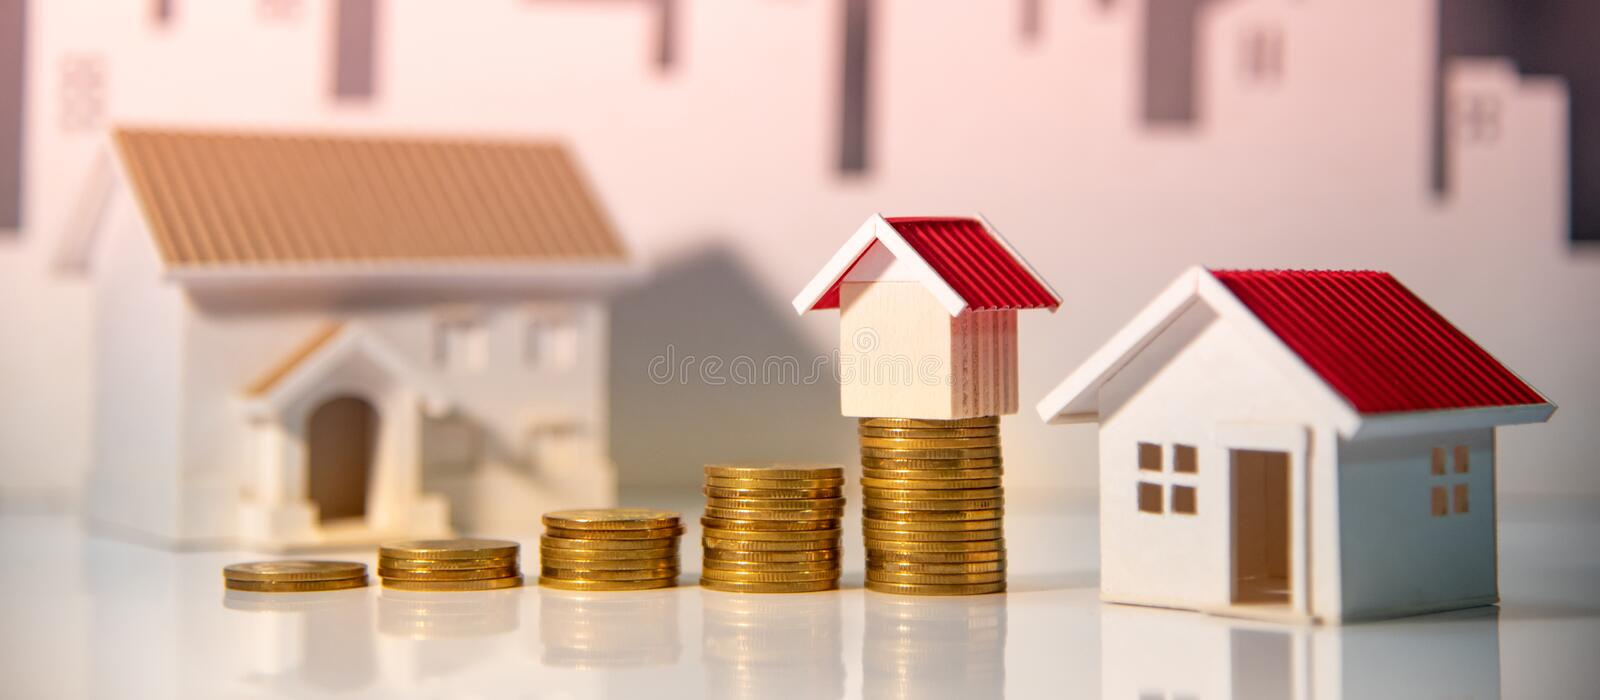 Real estate investment. Property ladder concept. Real estate investment or Home mortgage loan rate. Property ladder concept. Coins stack and house models on the royalty free stock photos